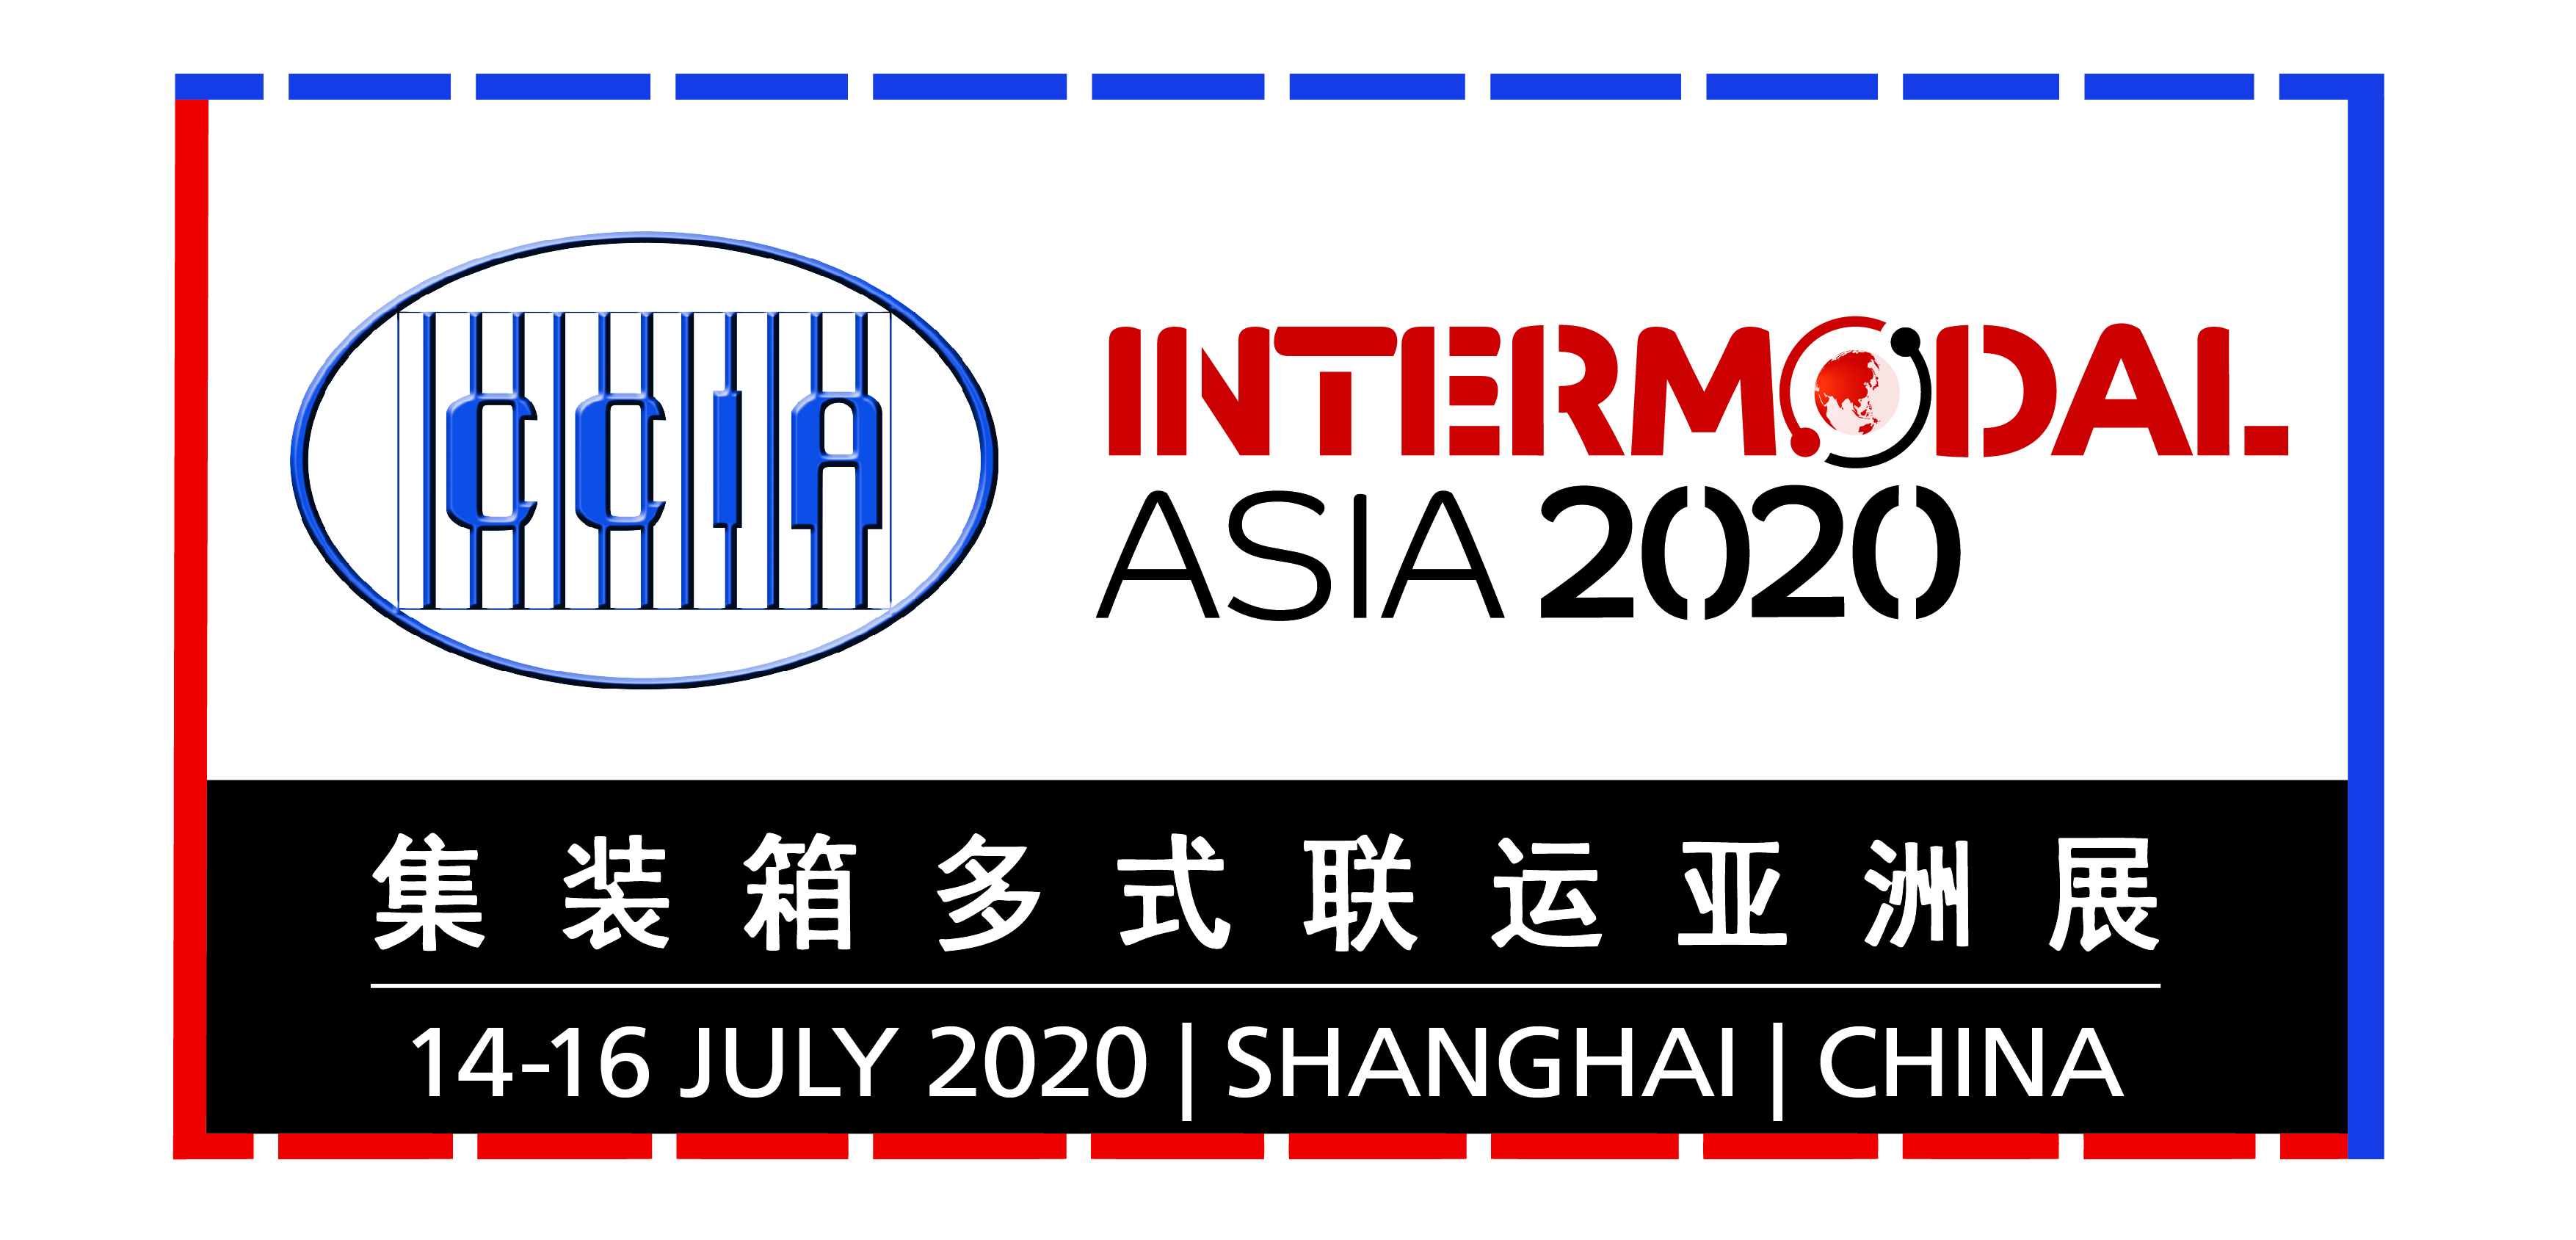 Intermodal Asia 2020 rescheduled to take place in July 2020